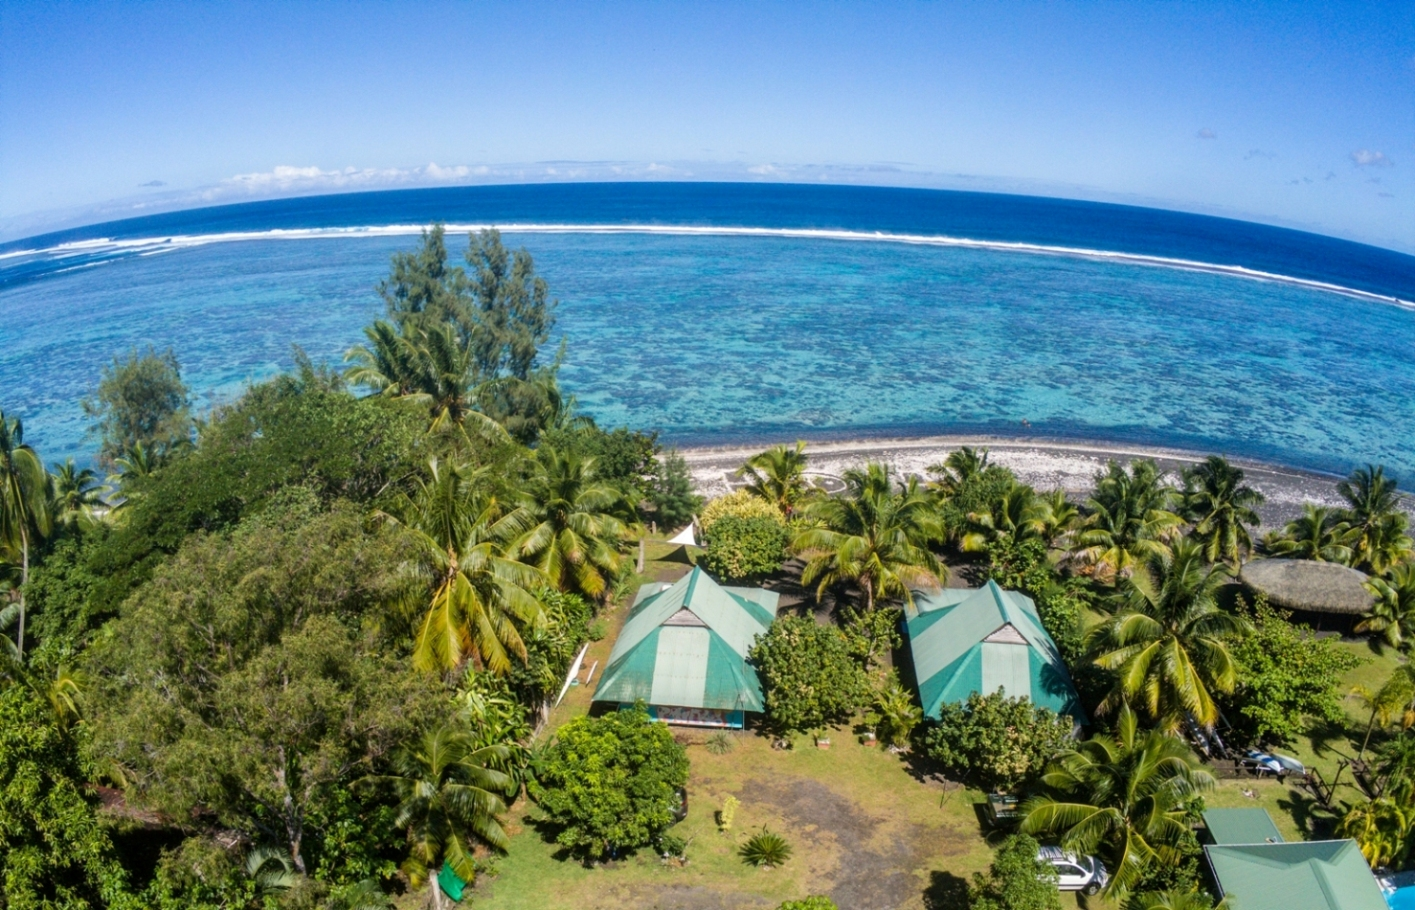 https://tahititourisme.be/wp-content/uploads/2019/08/copie-Tahiti-tourisme-948ko.jpg